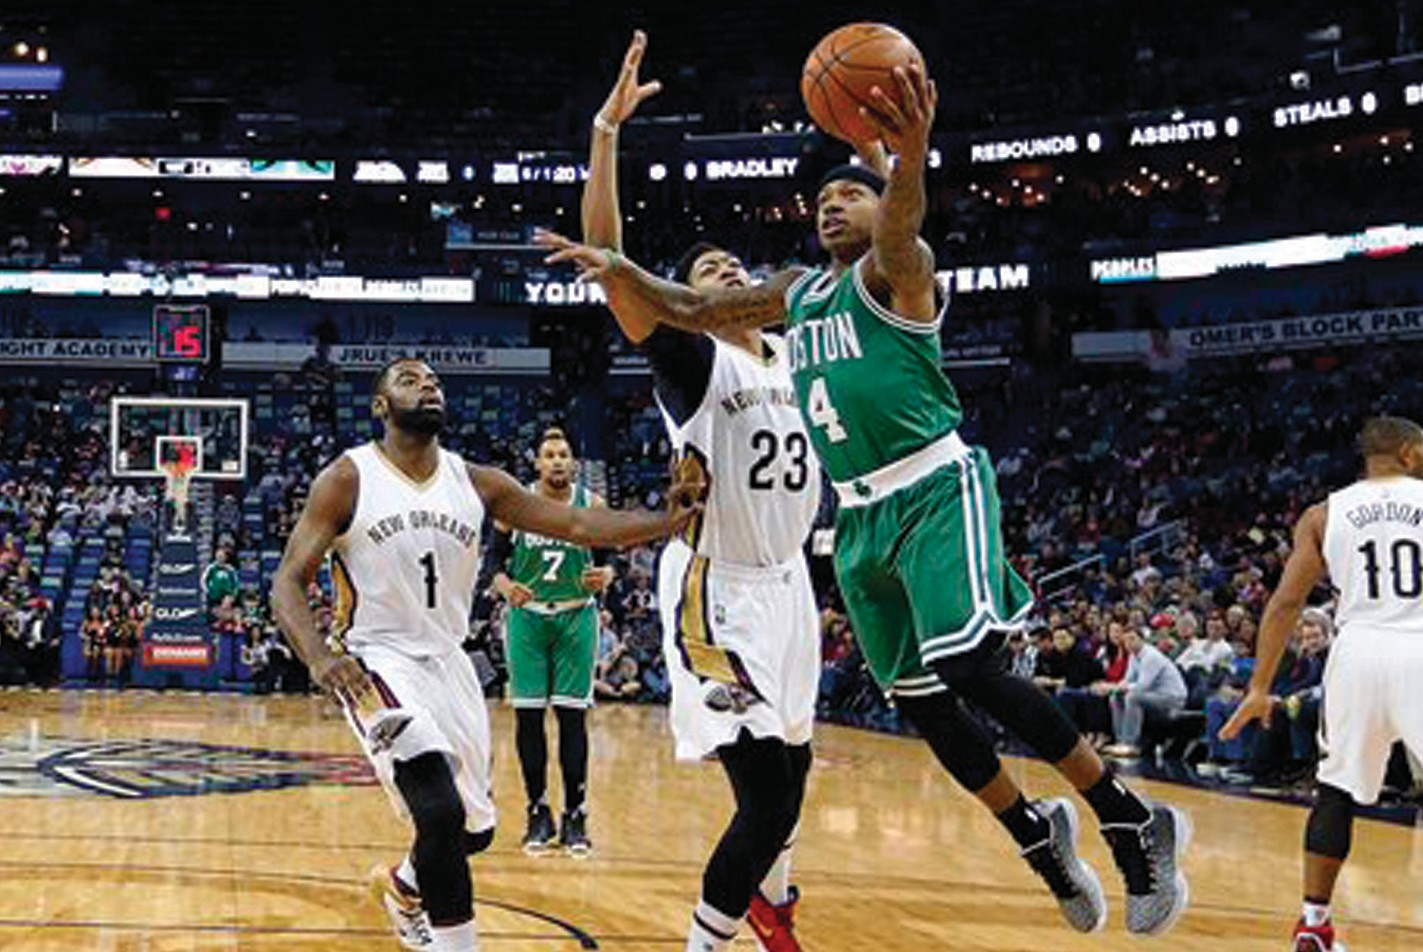 Boston Celtics guard Isaiah Thomas (4) goes to the basket against New Orleans Pelicans forward Anthony Davis (23) in the first half of in New Orleans on Monday.